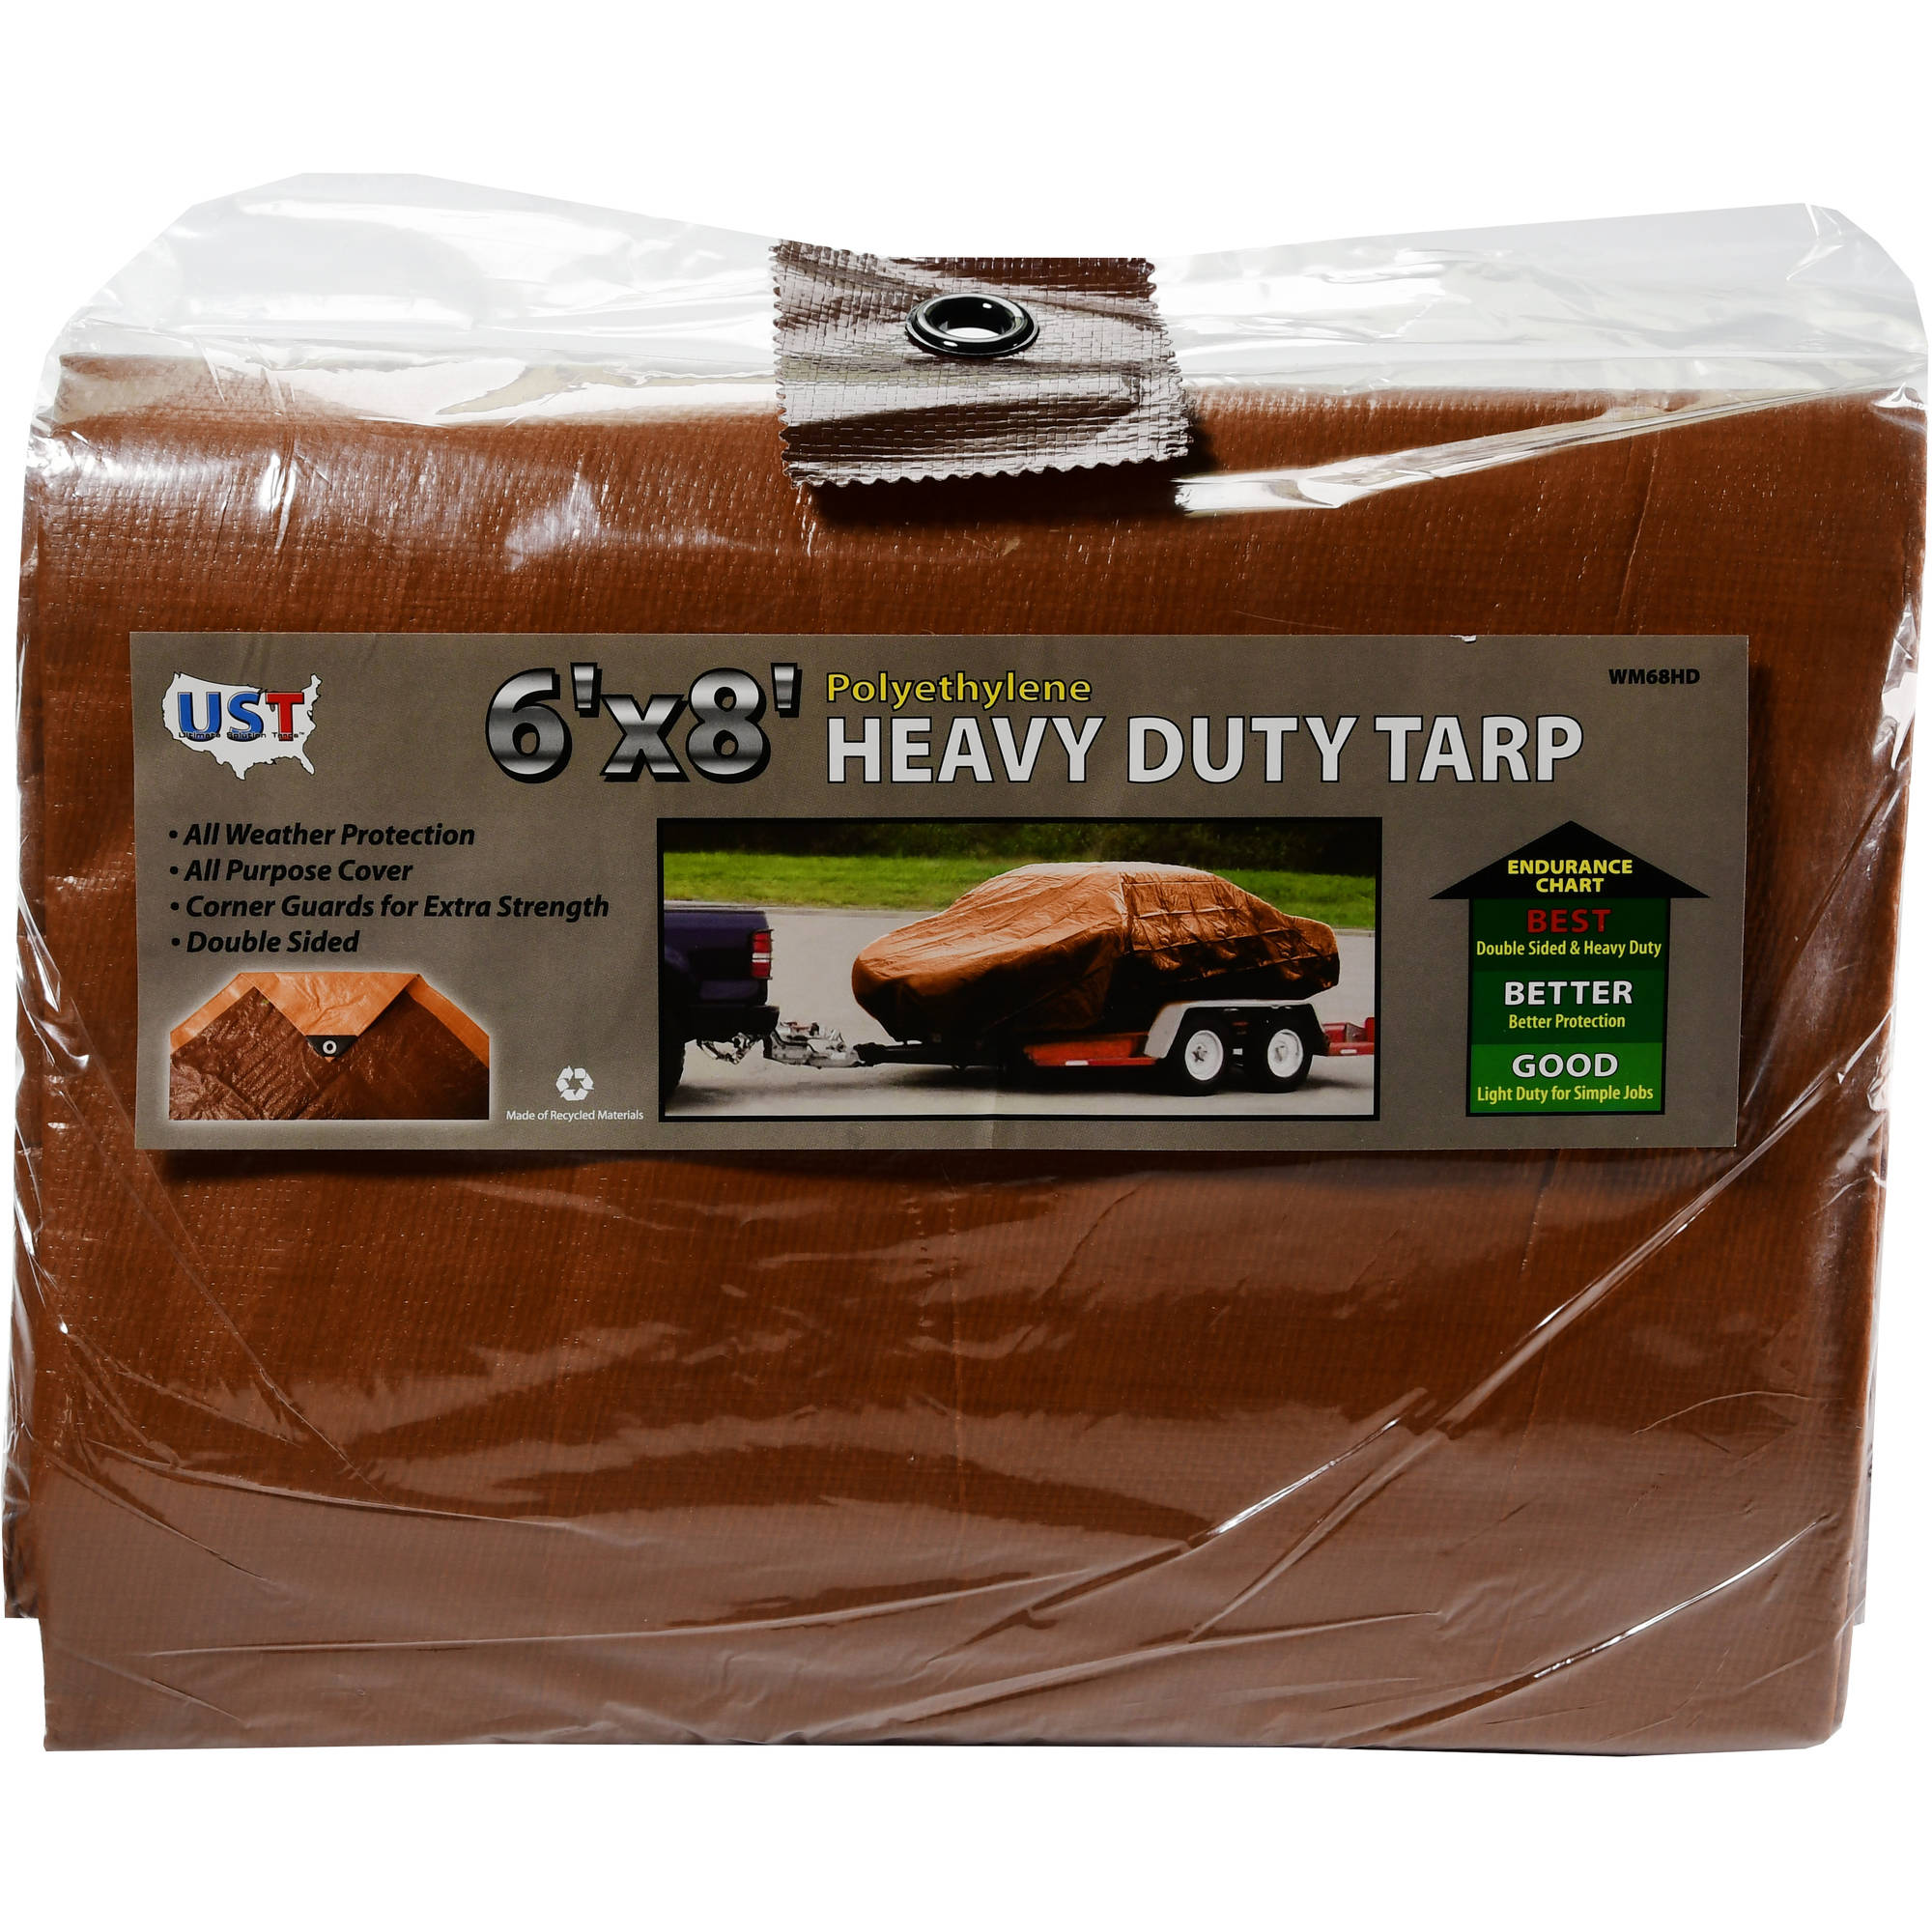 6' x 8' Heavy Duty Tan/Brown Tarp